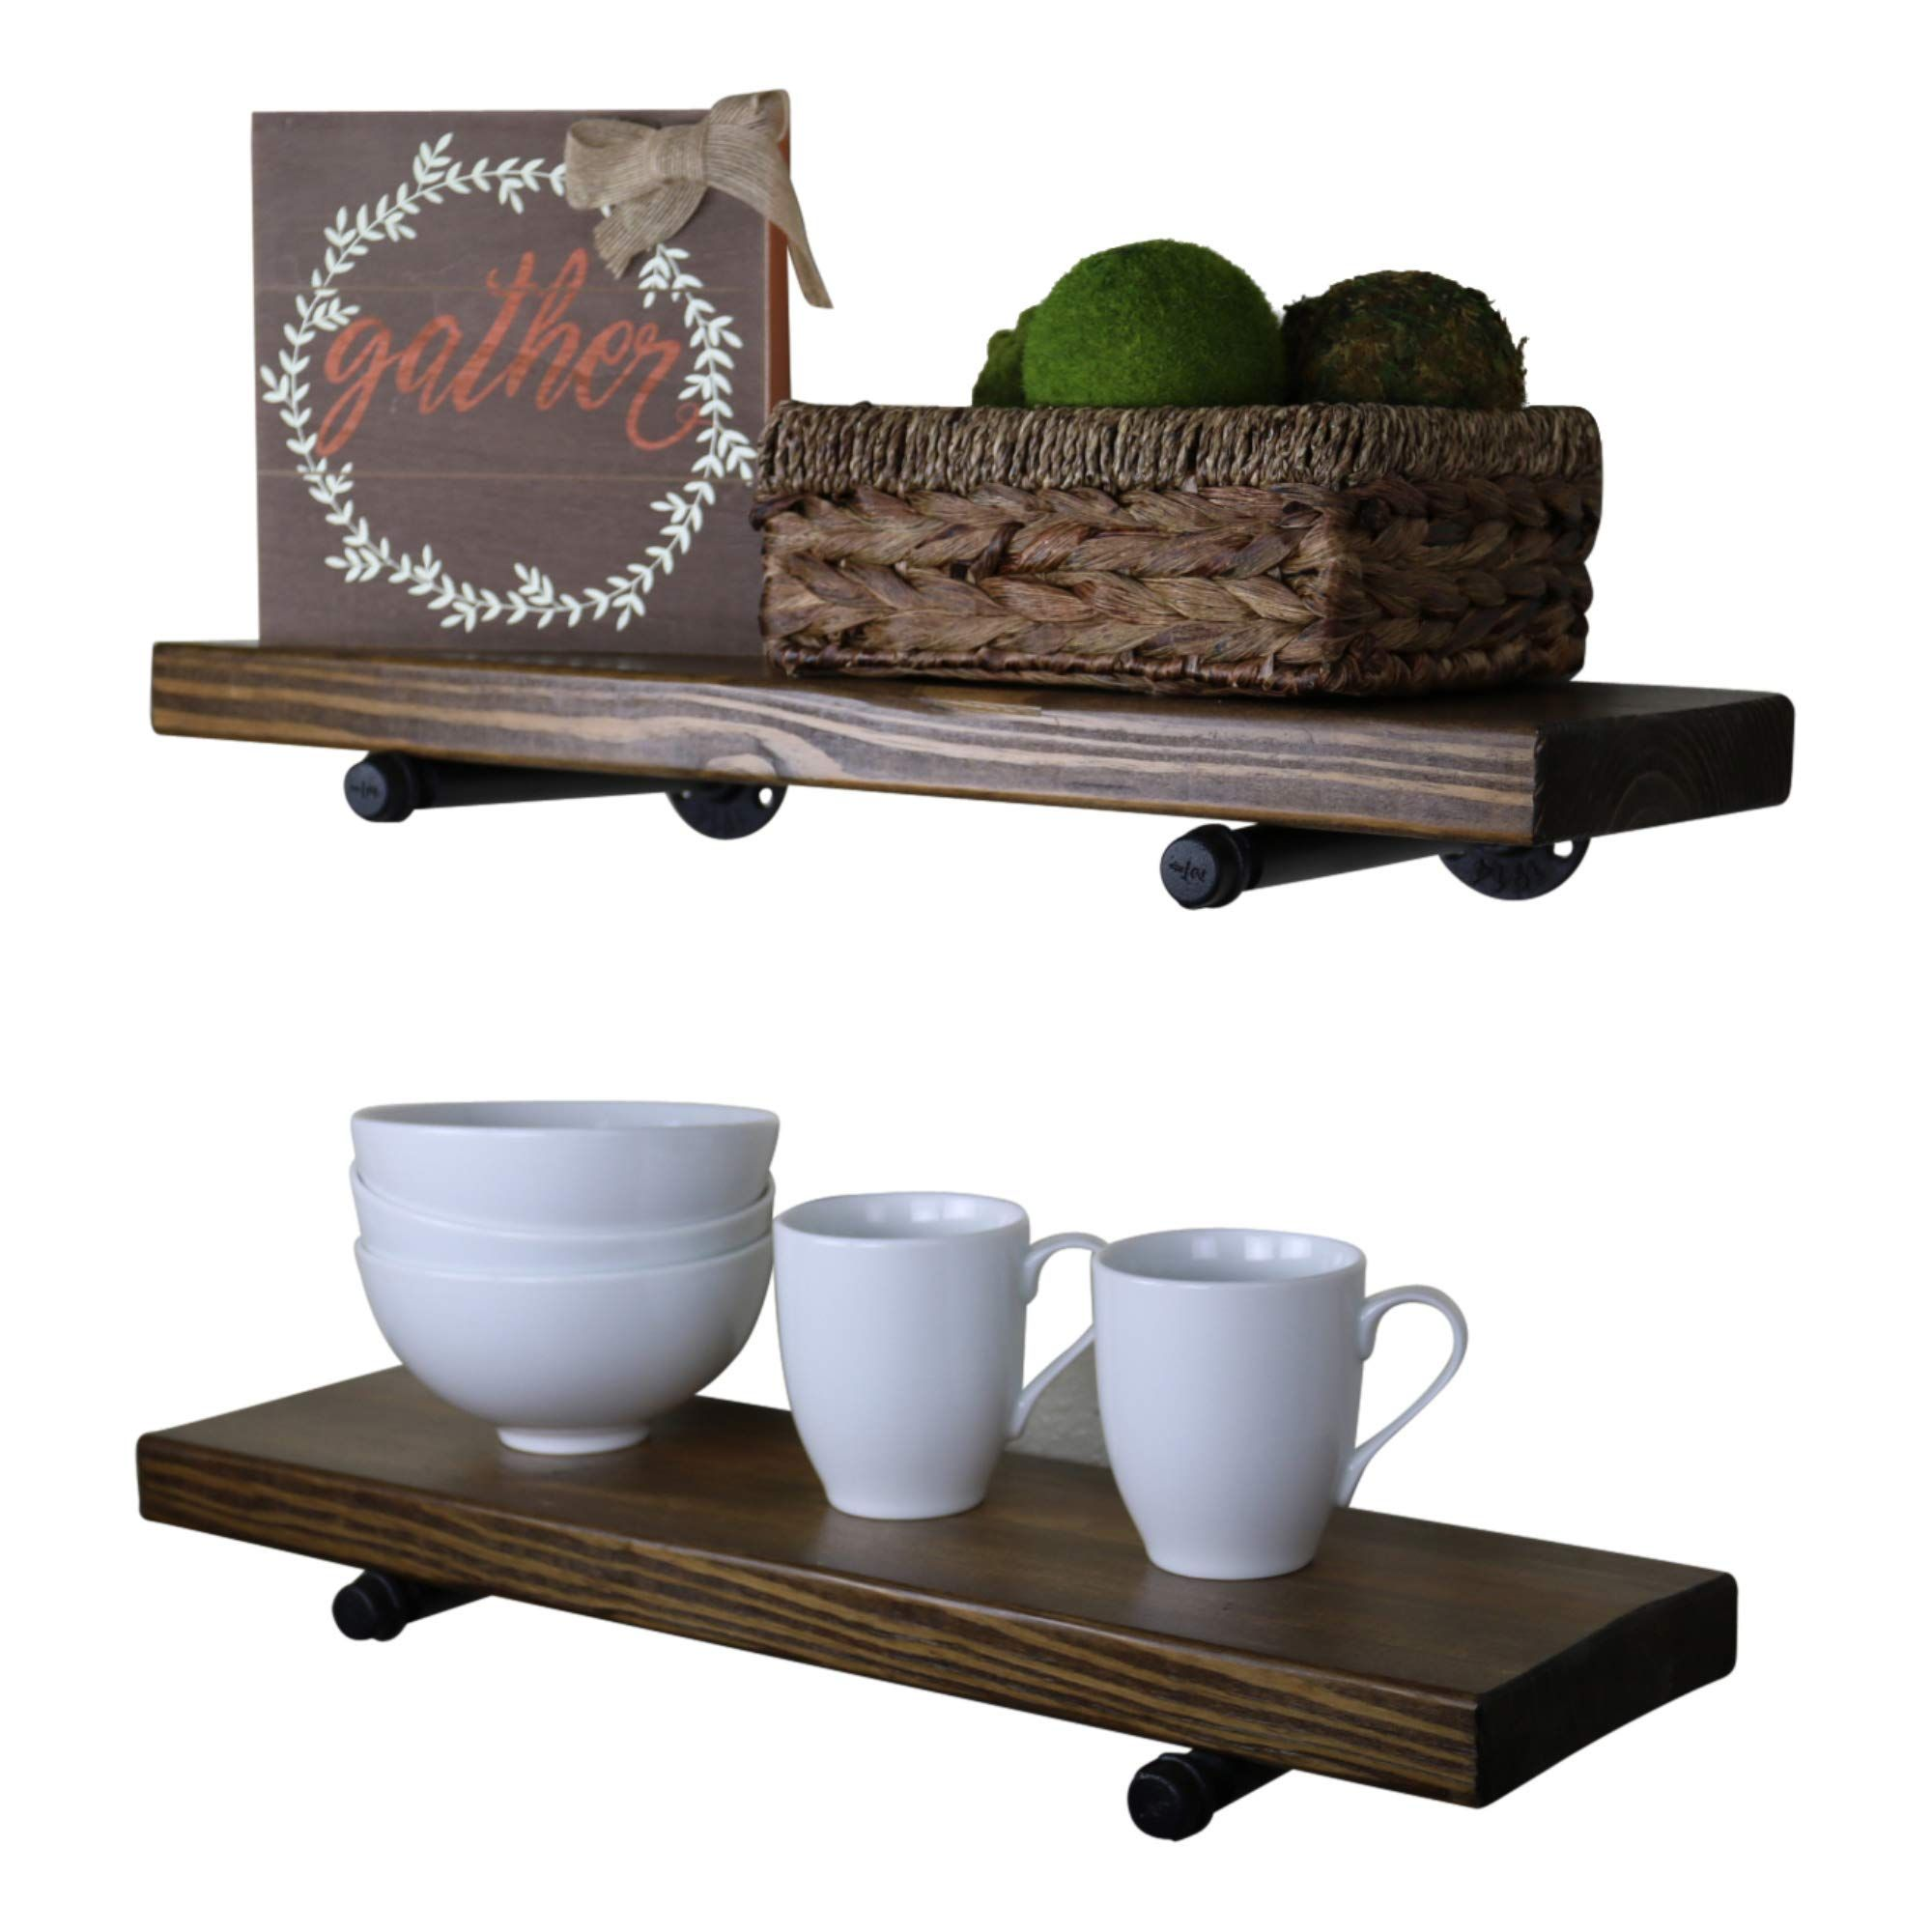 Sdi Designs Rustic Farmhouse Industrial Shelves Deep Floating Wall Shelf With Industrial Pipes In 2020 Rustic Design Rustic Wood Floating Shelves Modern Rustic Design